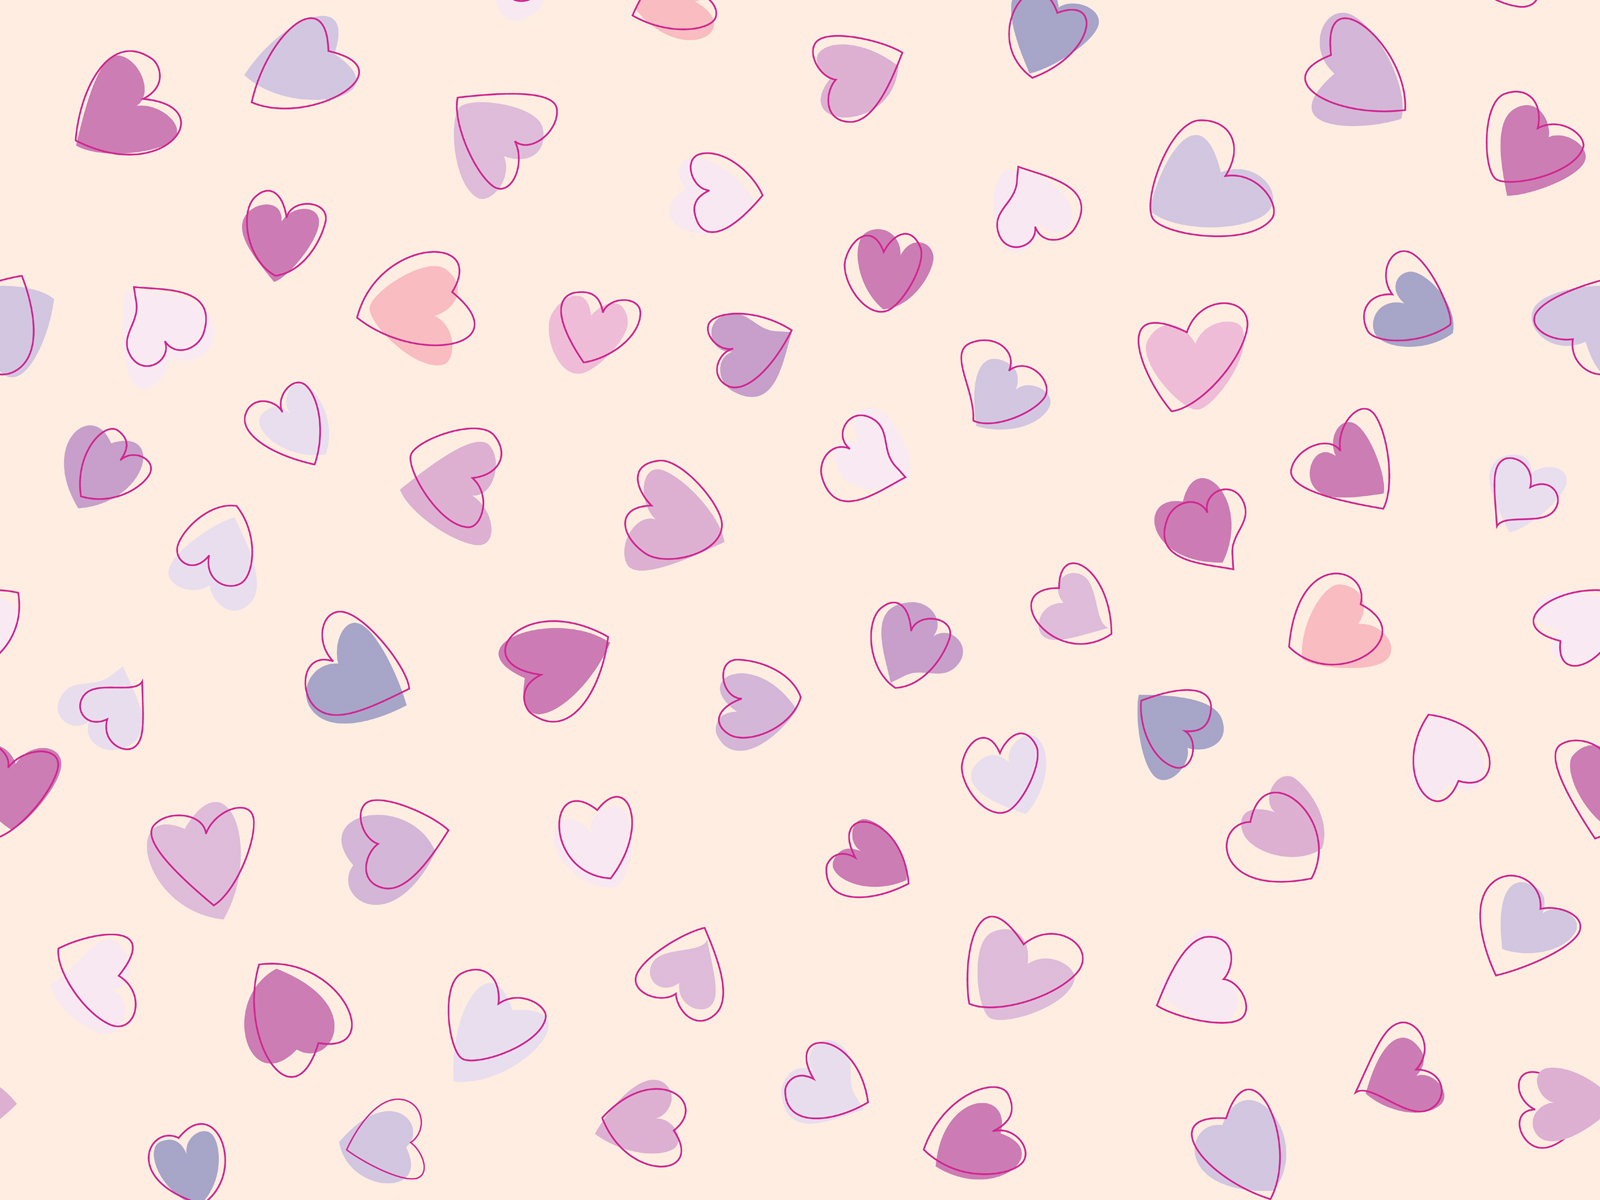 Cute heart pattern wallpaper 1600x1200 27954 cute tumblr cat